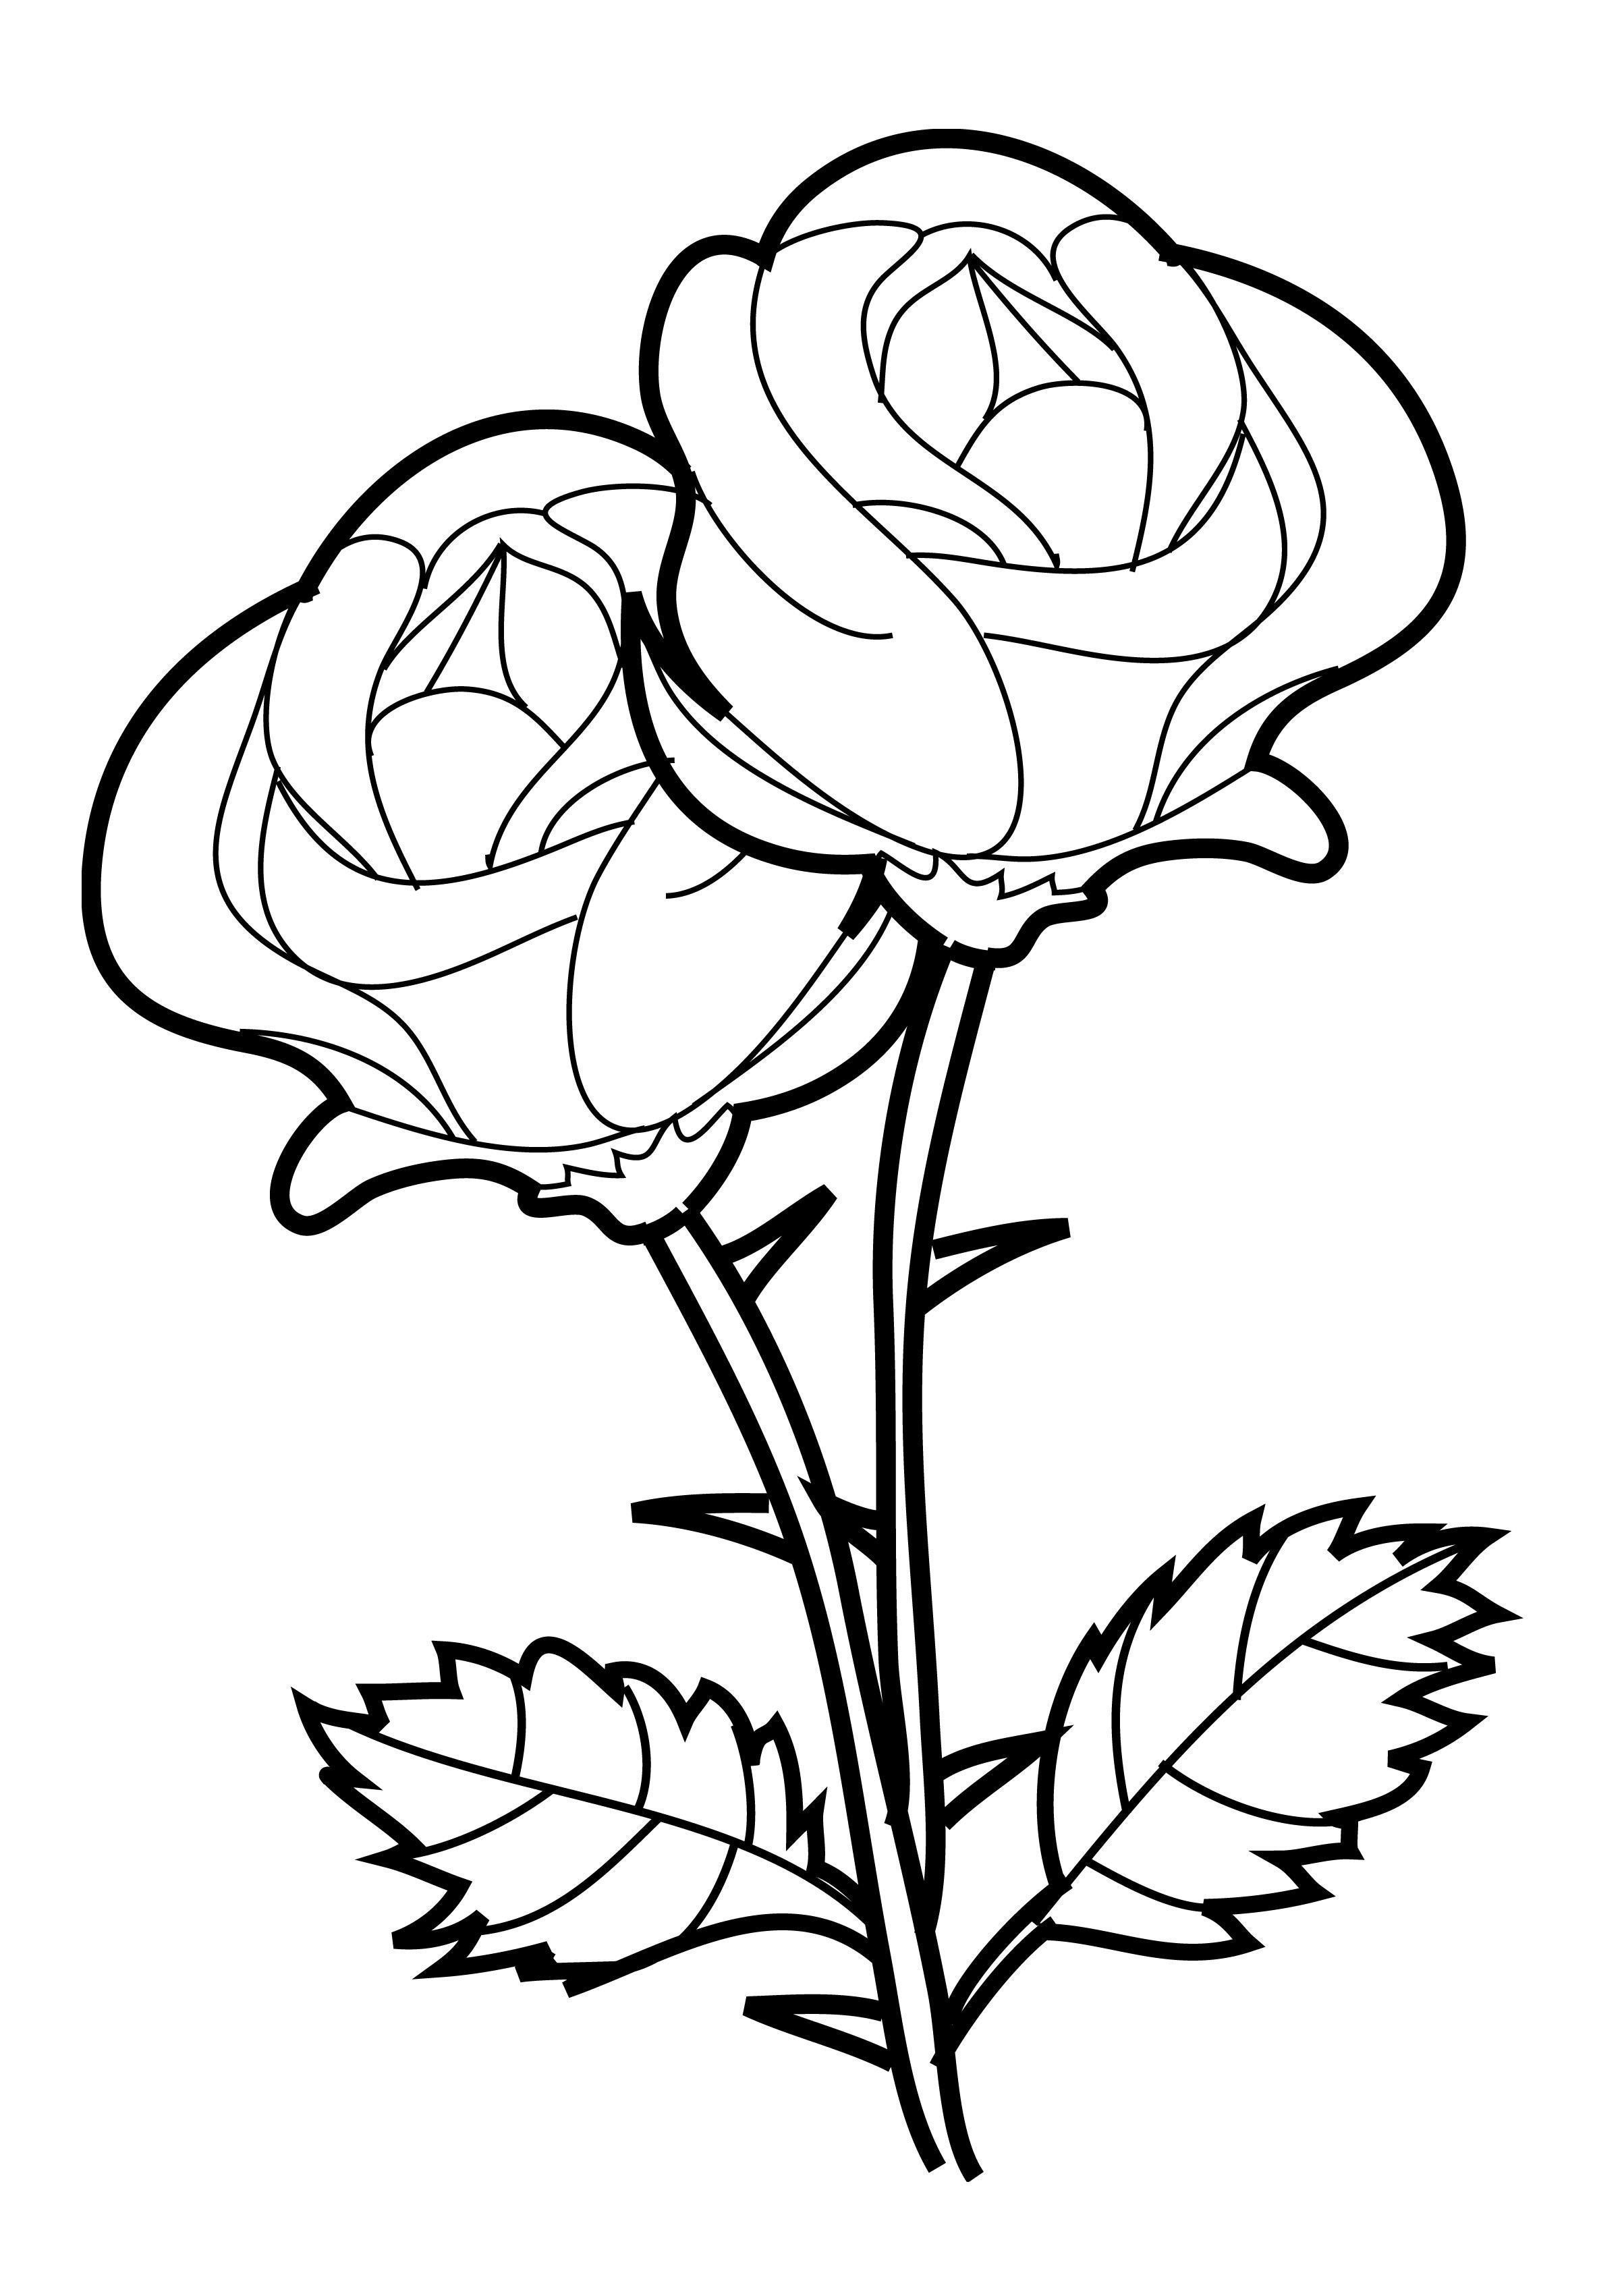 2407x3366 Beauty And The Beast Rose Coloring Pages